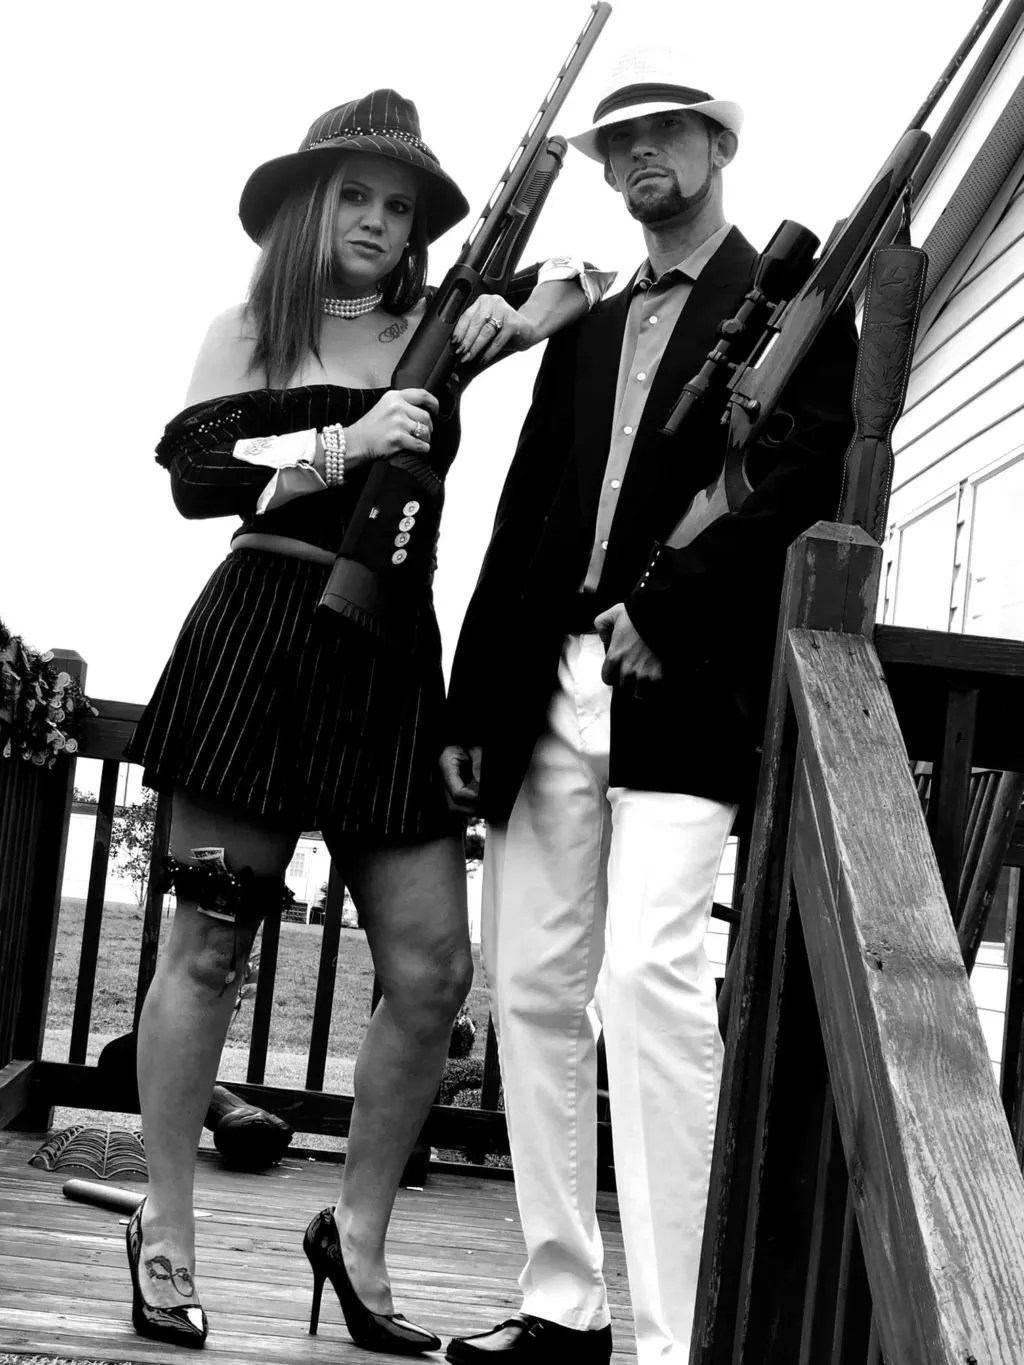 Bonnie And Clyde Costume : bonnie, clyde, costume, Bonnie, Clyde, Halloween, Costume, Contest